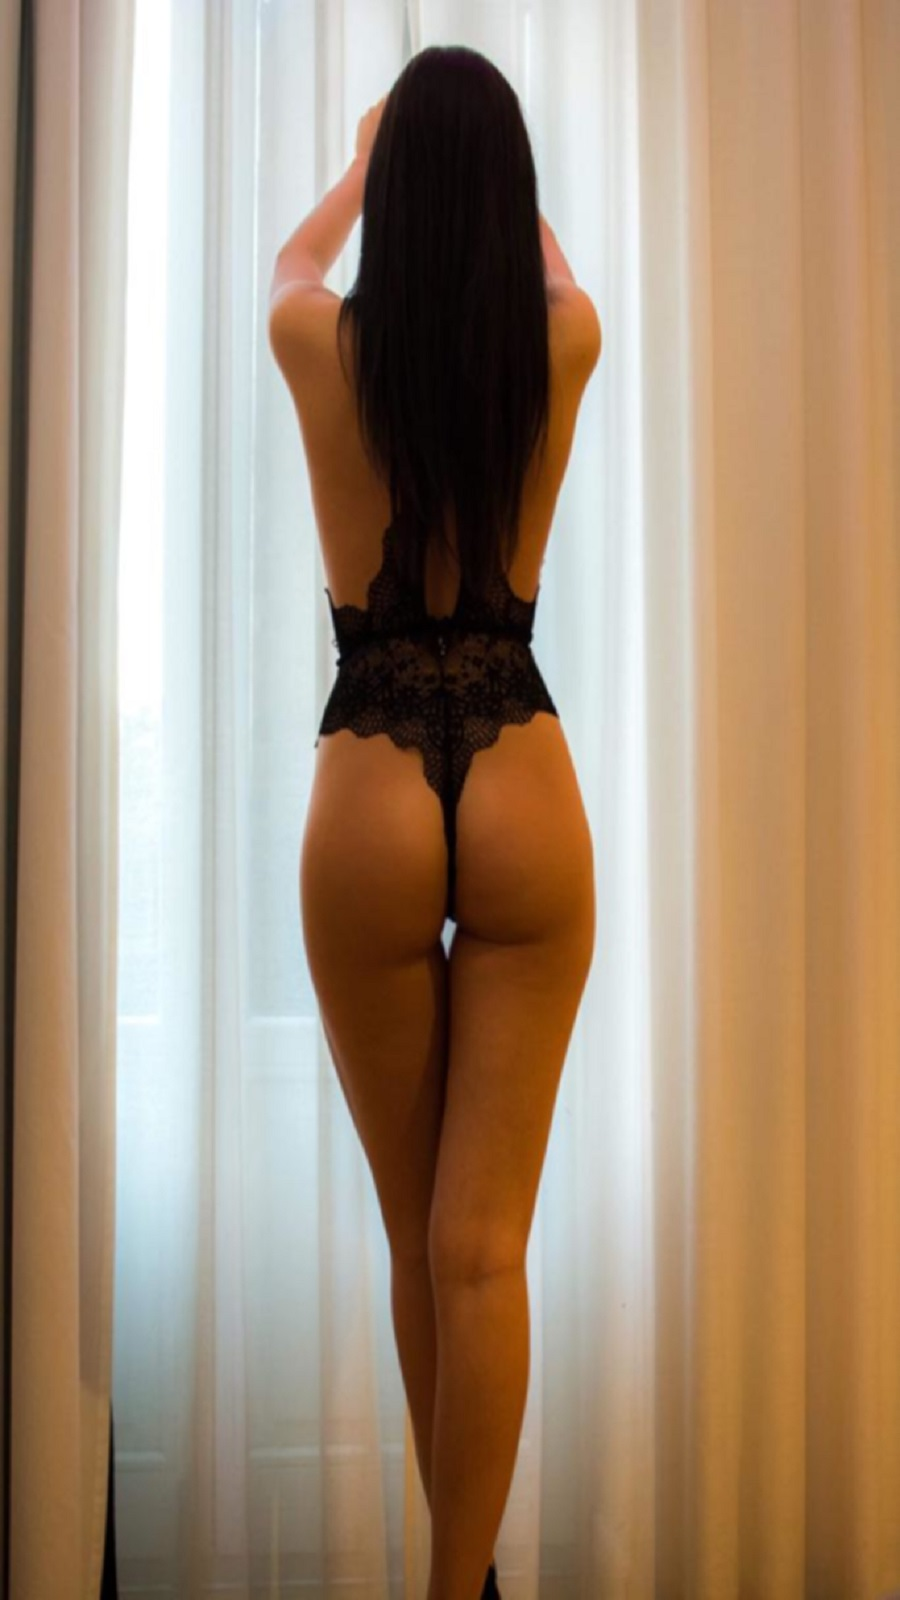 If you are looking for the perfect companion tonight give us a call on 07412621234 to book Adriana for the best night of your life.